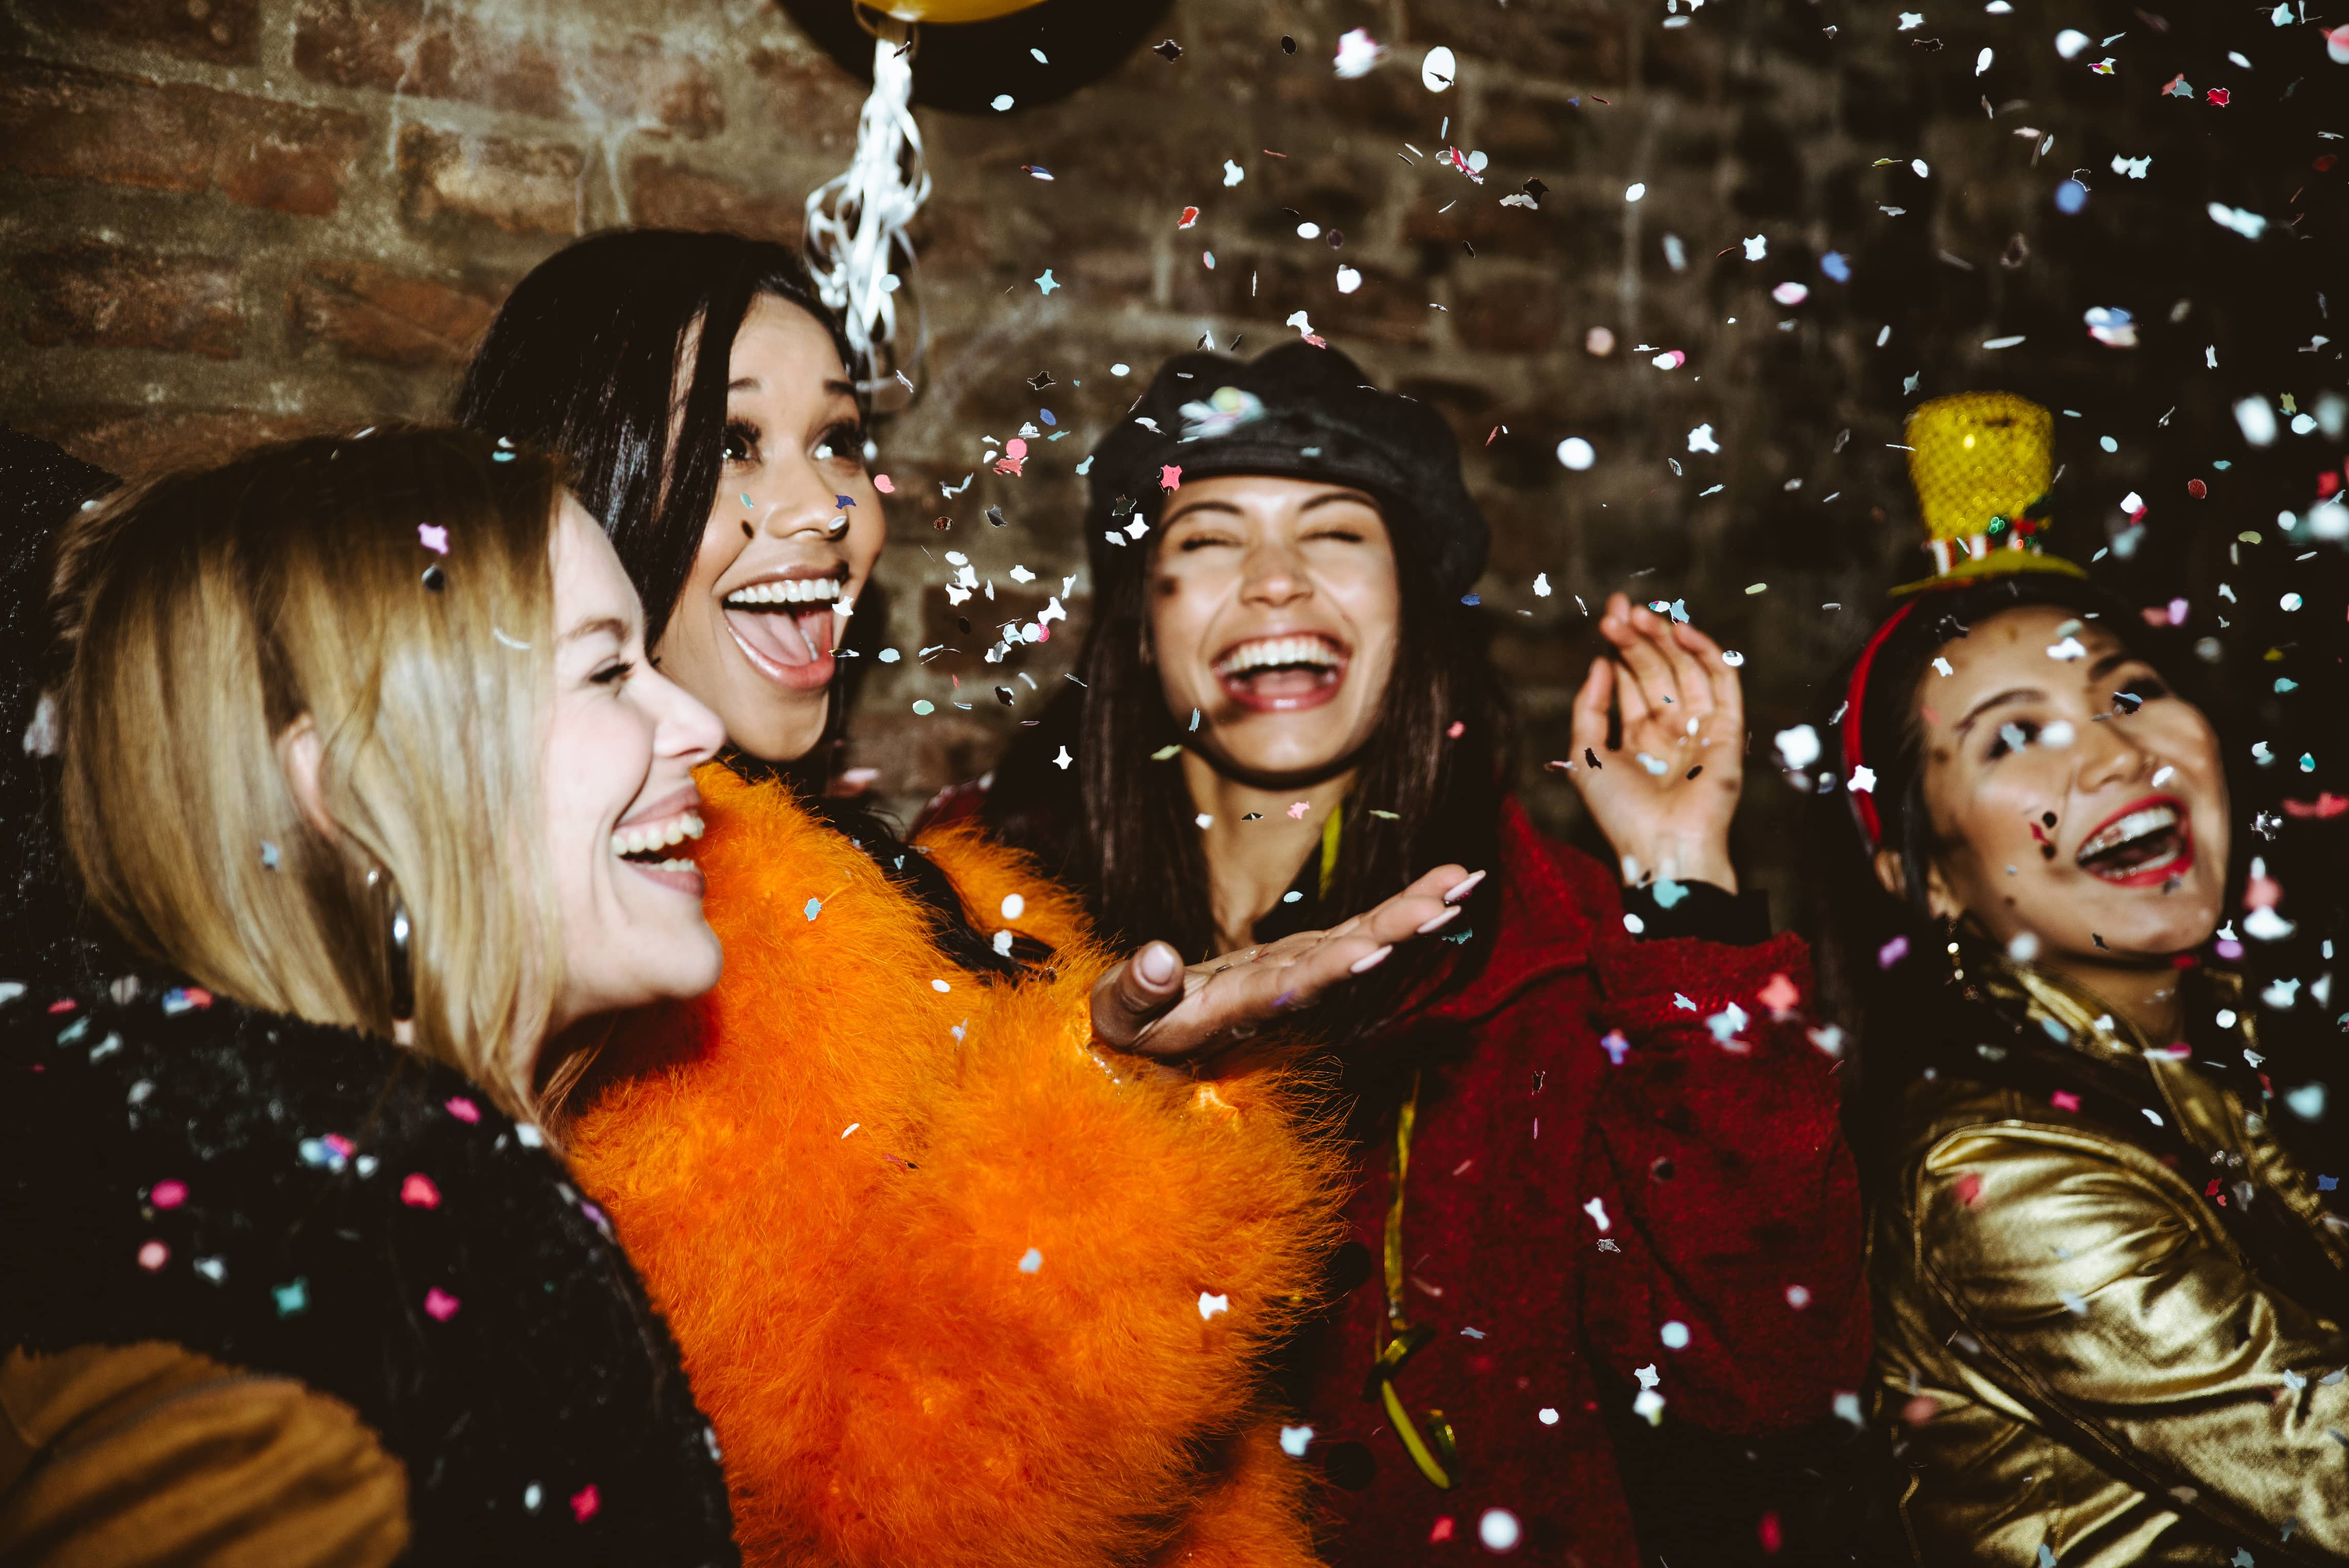 Our Guide to Planning an Unforgettable Sweet 16